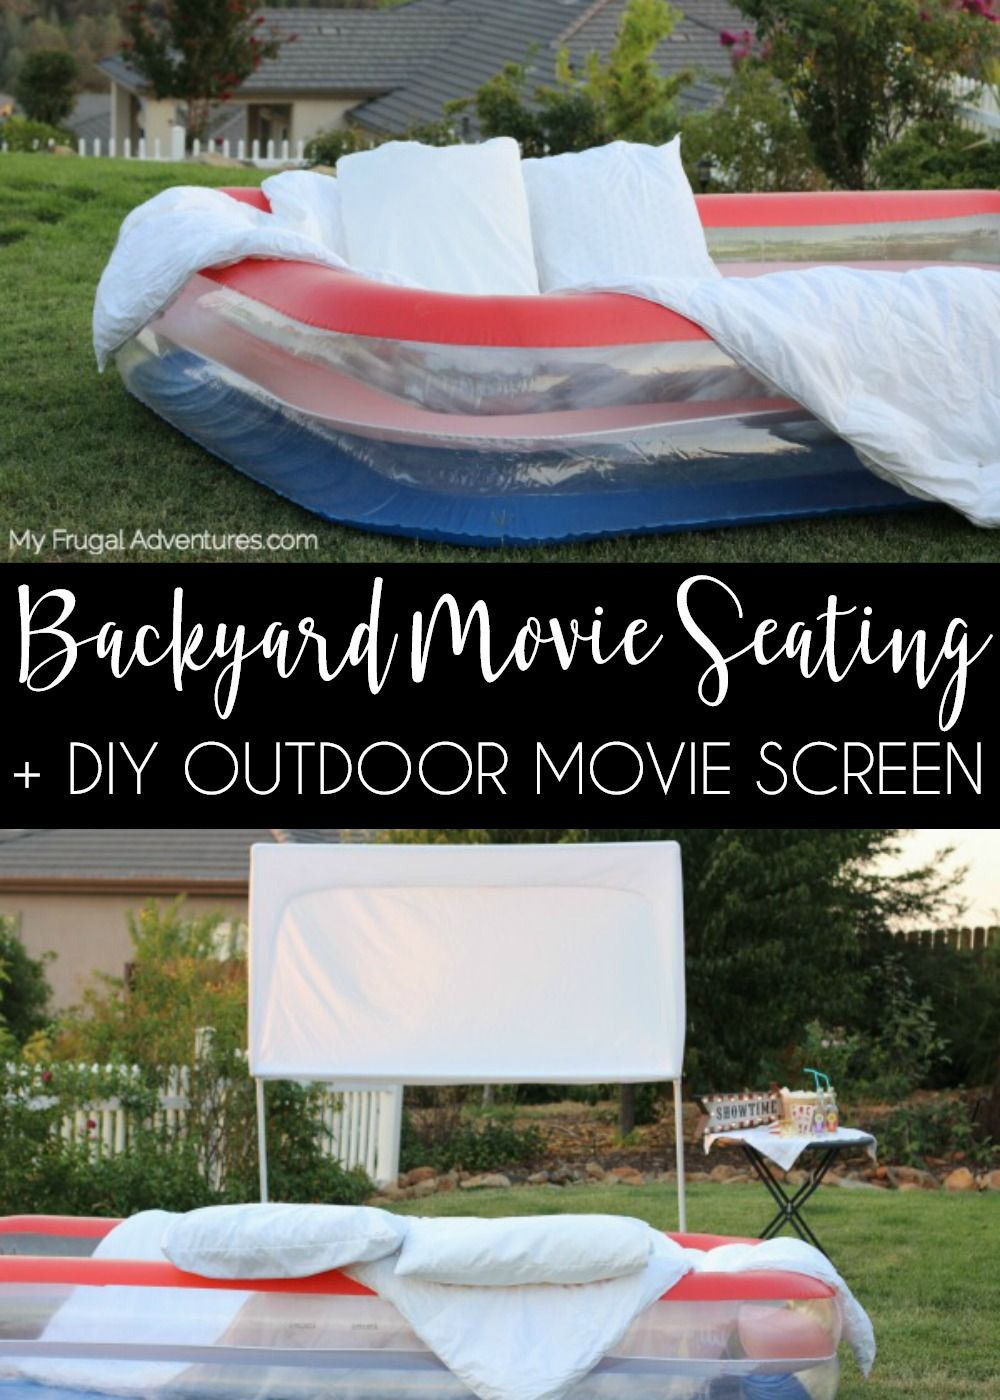 How To Build An Outdoor Movie Screen My Frugal Adventures Diy Outdoor Movie Screen Diy Backyard Movie Night Diy Backyard Movie